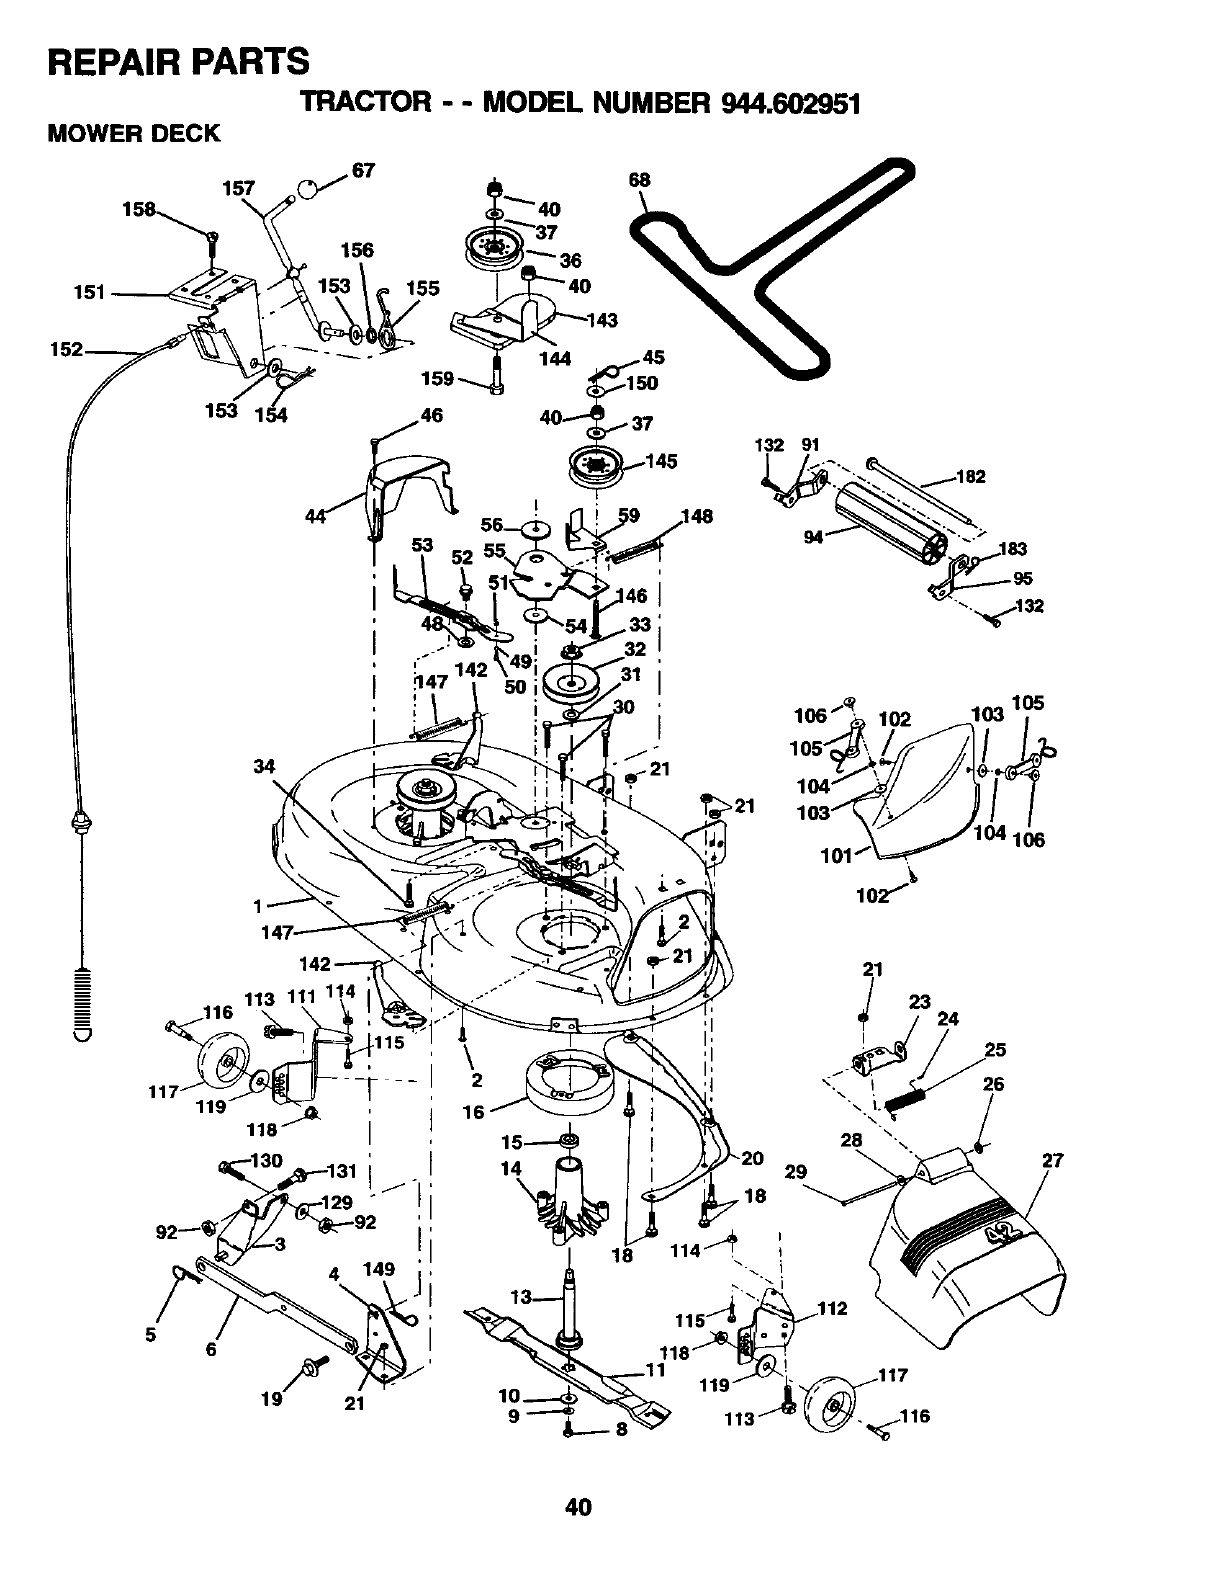 Page 40 of Craftsman Lawn Mower 944.602951 User Guide